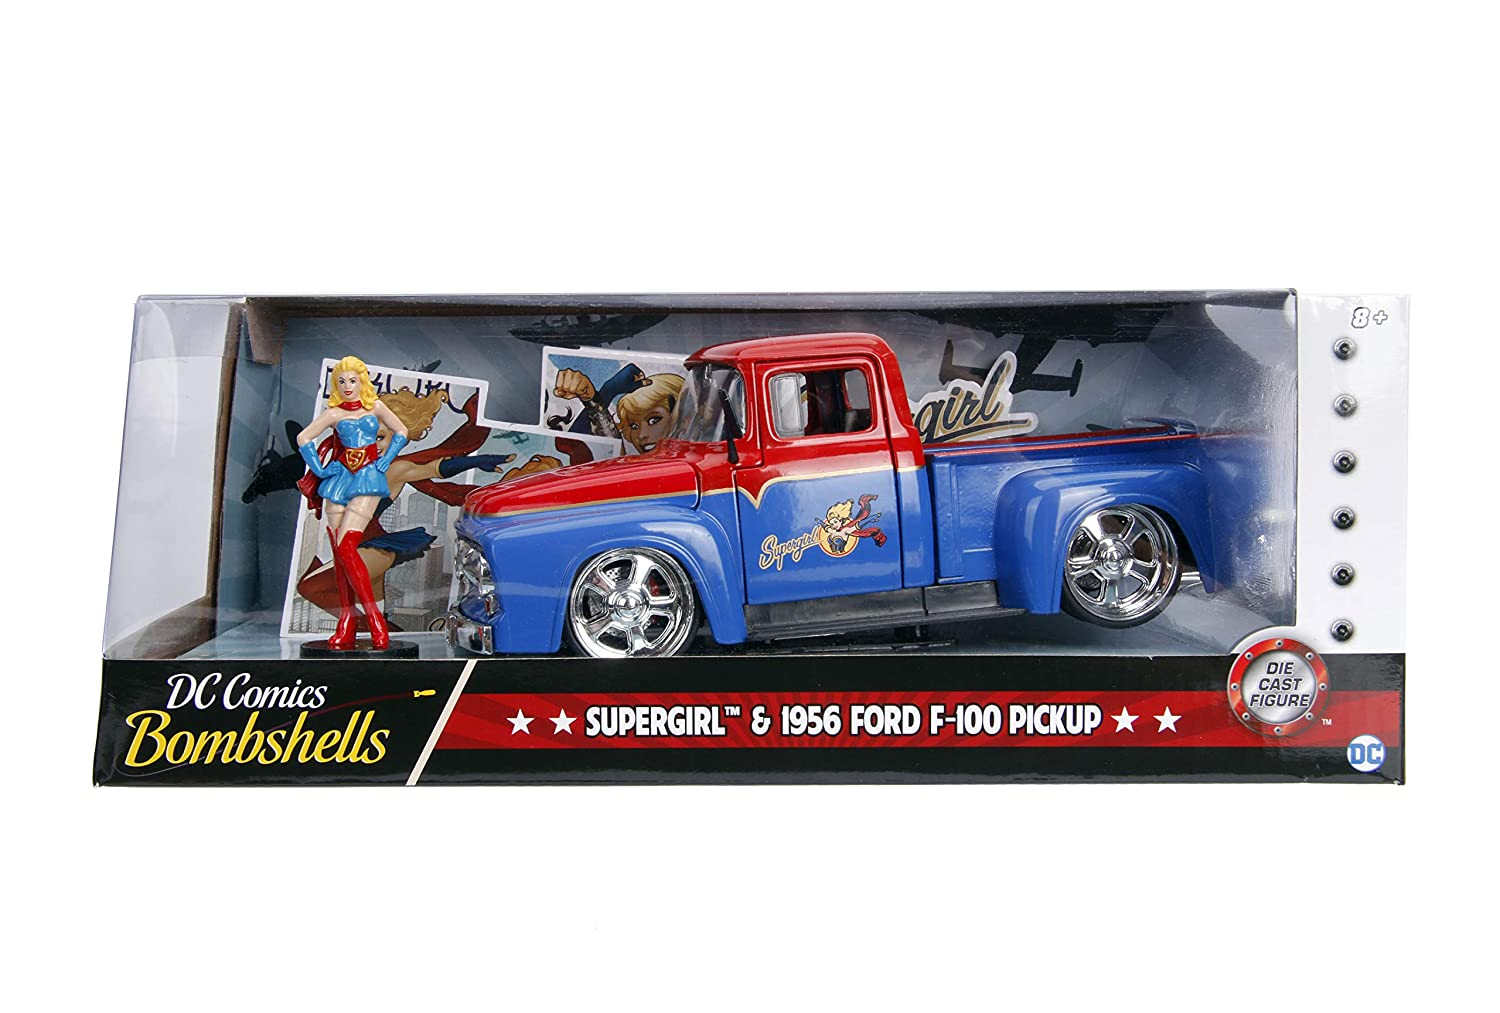 Contemporary Manufacture Cars, Trucks & Vans JADA 1:24 DC SUPERGIRL & 1956 FORD F-100 PICKUP DIE-CAST RED BLUE 30454